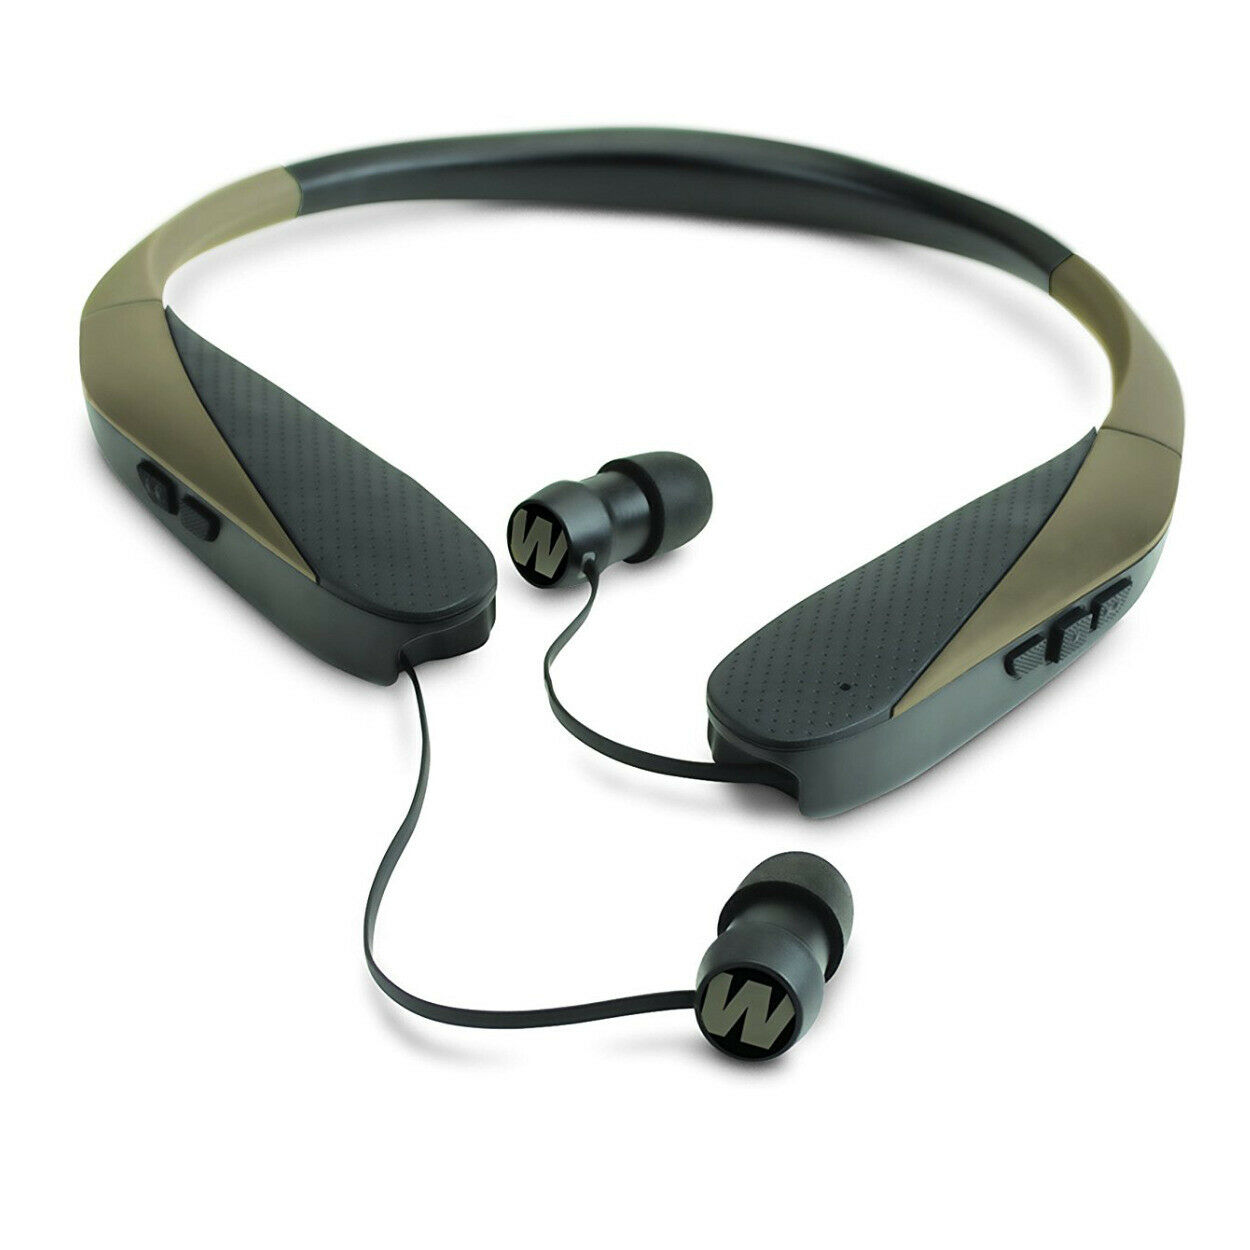 924a3936597 UPC 888151013458 product image for Unisar Tv Listener J3 Extra Headset  Wireless Headphones For Tv ...